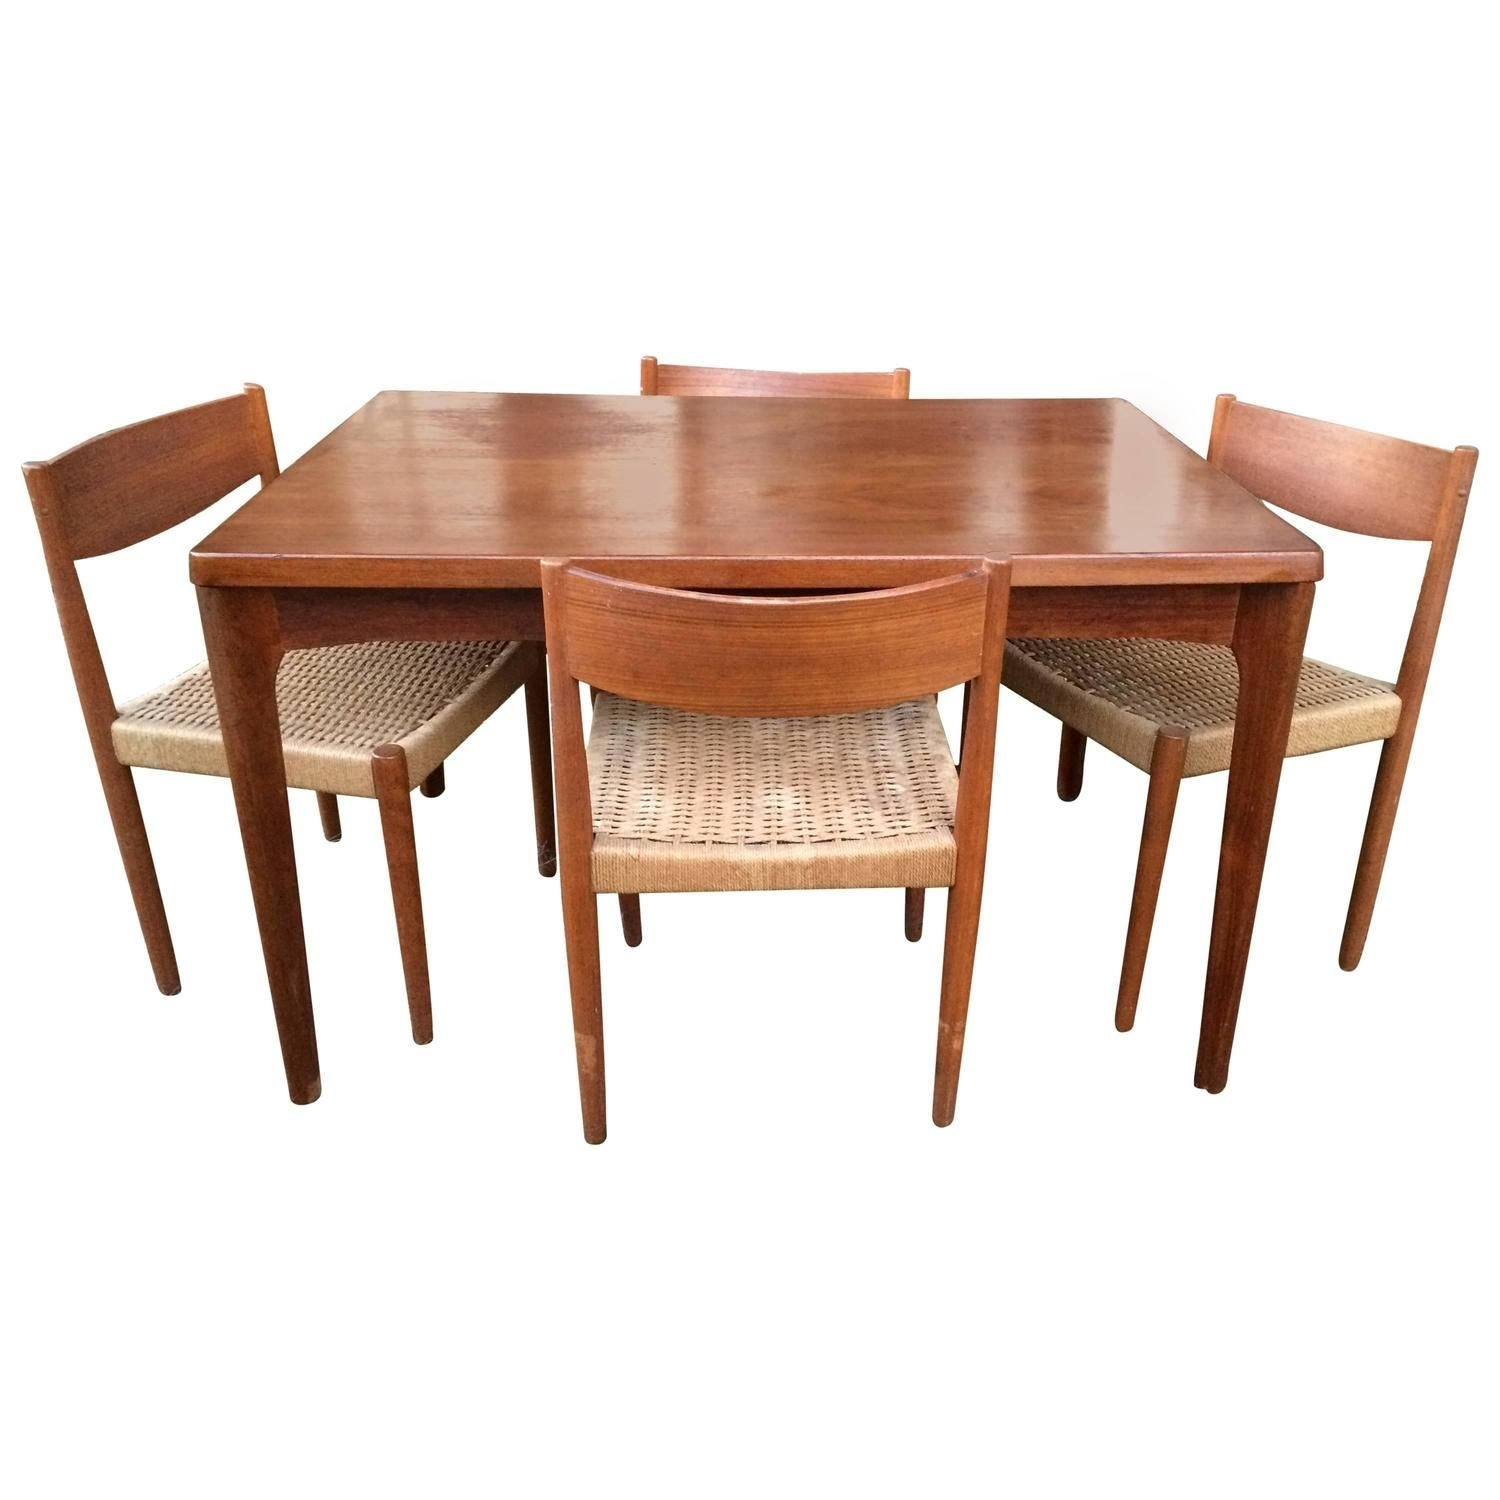 Danish Modern Extendable Teak Dining Table With Woven Chairs With Regard To Latest Helms 5 Piece Round Dining Sets With Side Chairs (View 15 of 20)